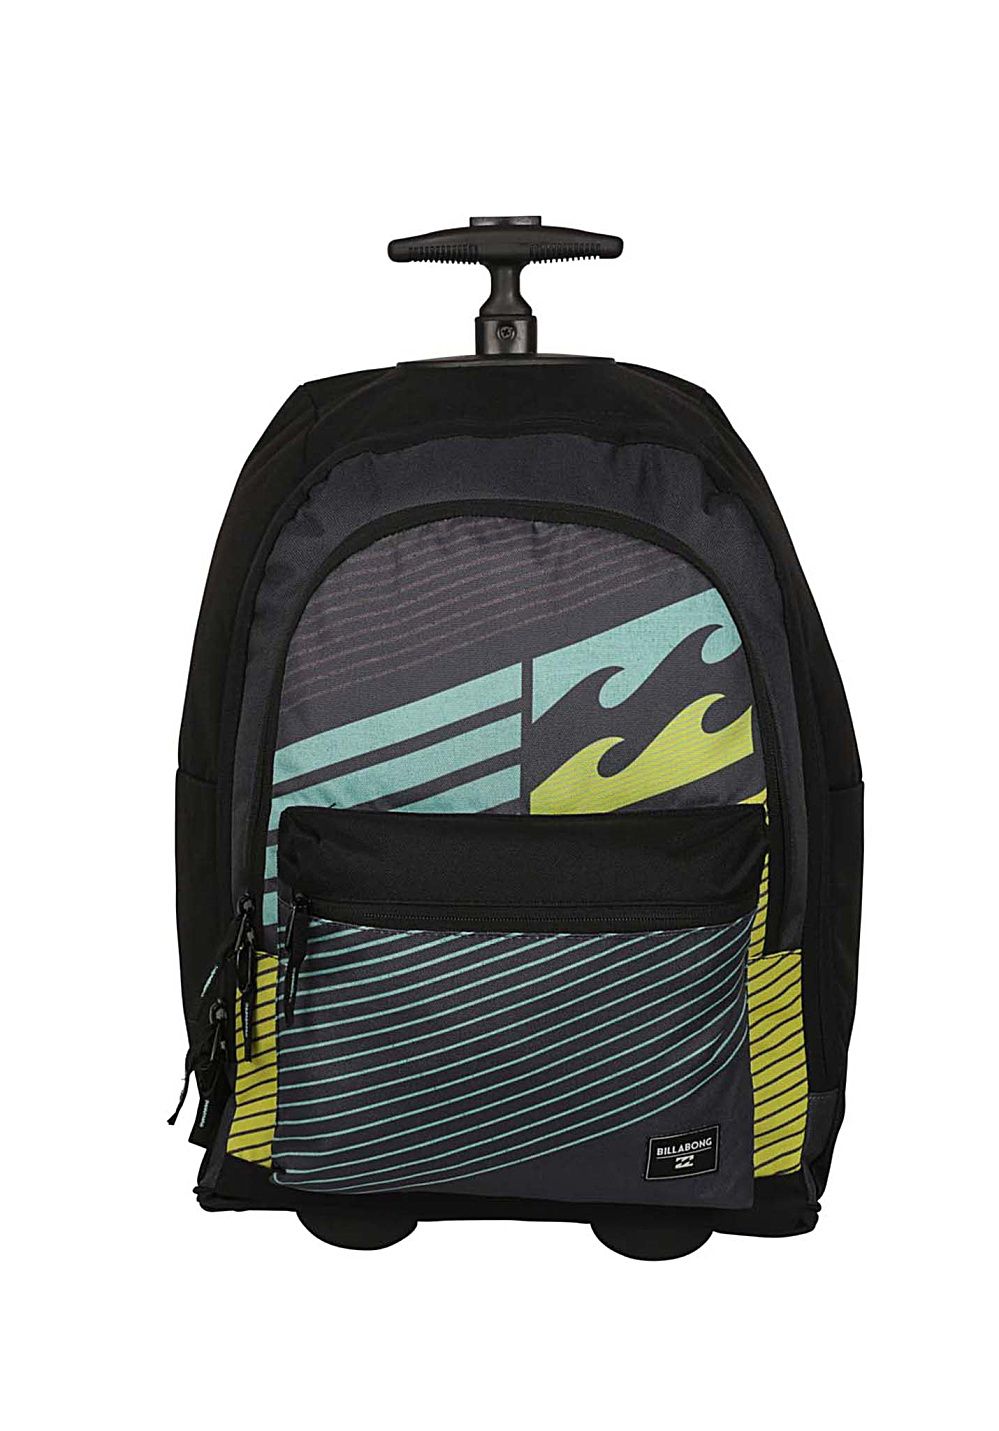 Billabong Rolling Backpack - Crazy Backpacks